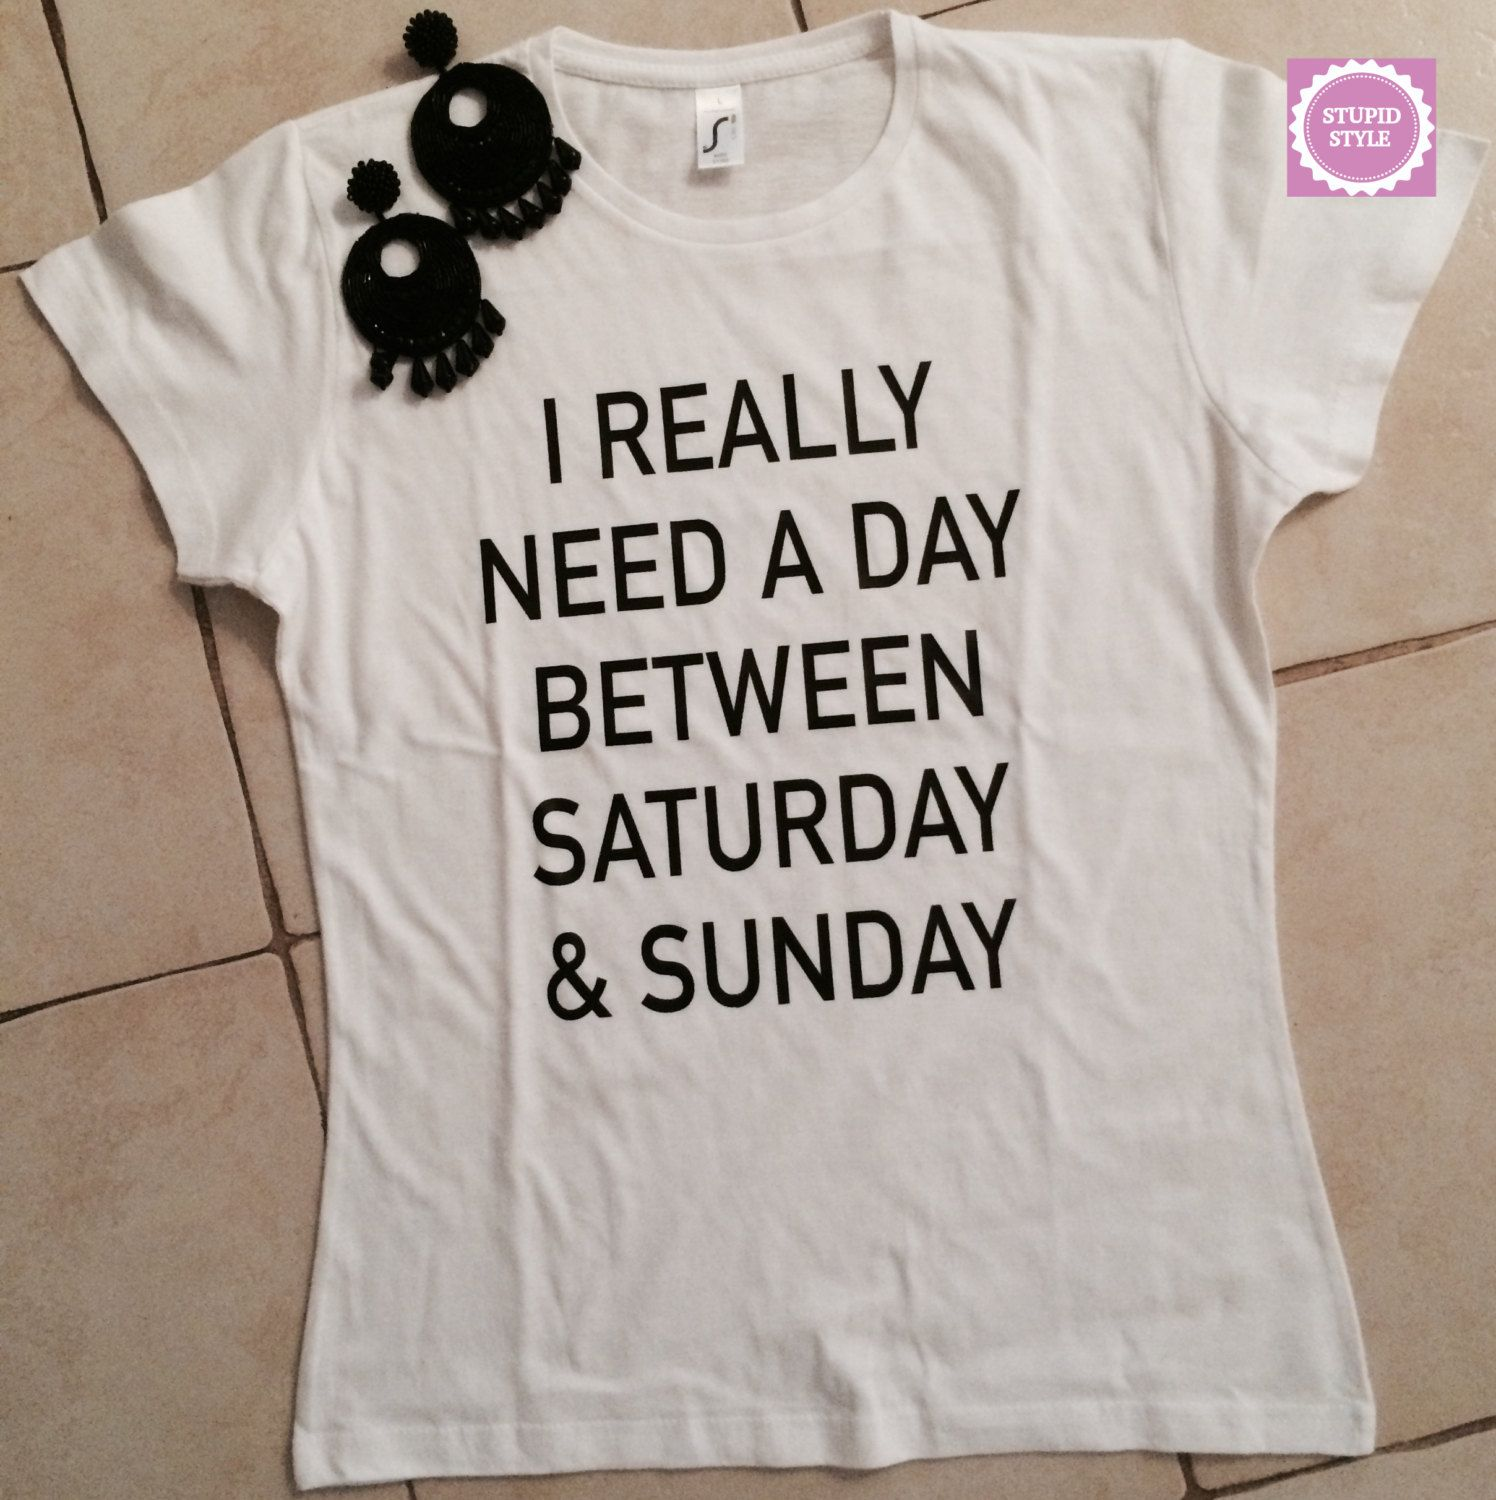 3b074796 cool tee shirt sayings for teen girls | ... shirt womens girls tumblr funny  teens teenagers quotes slogan fun